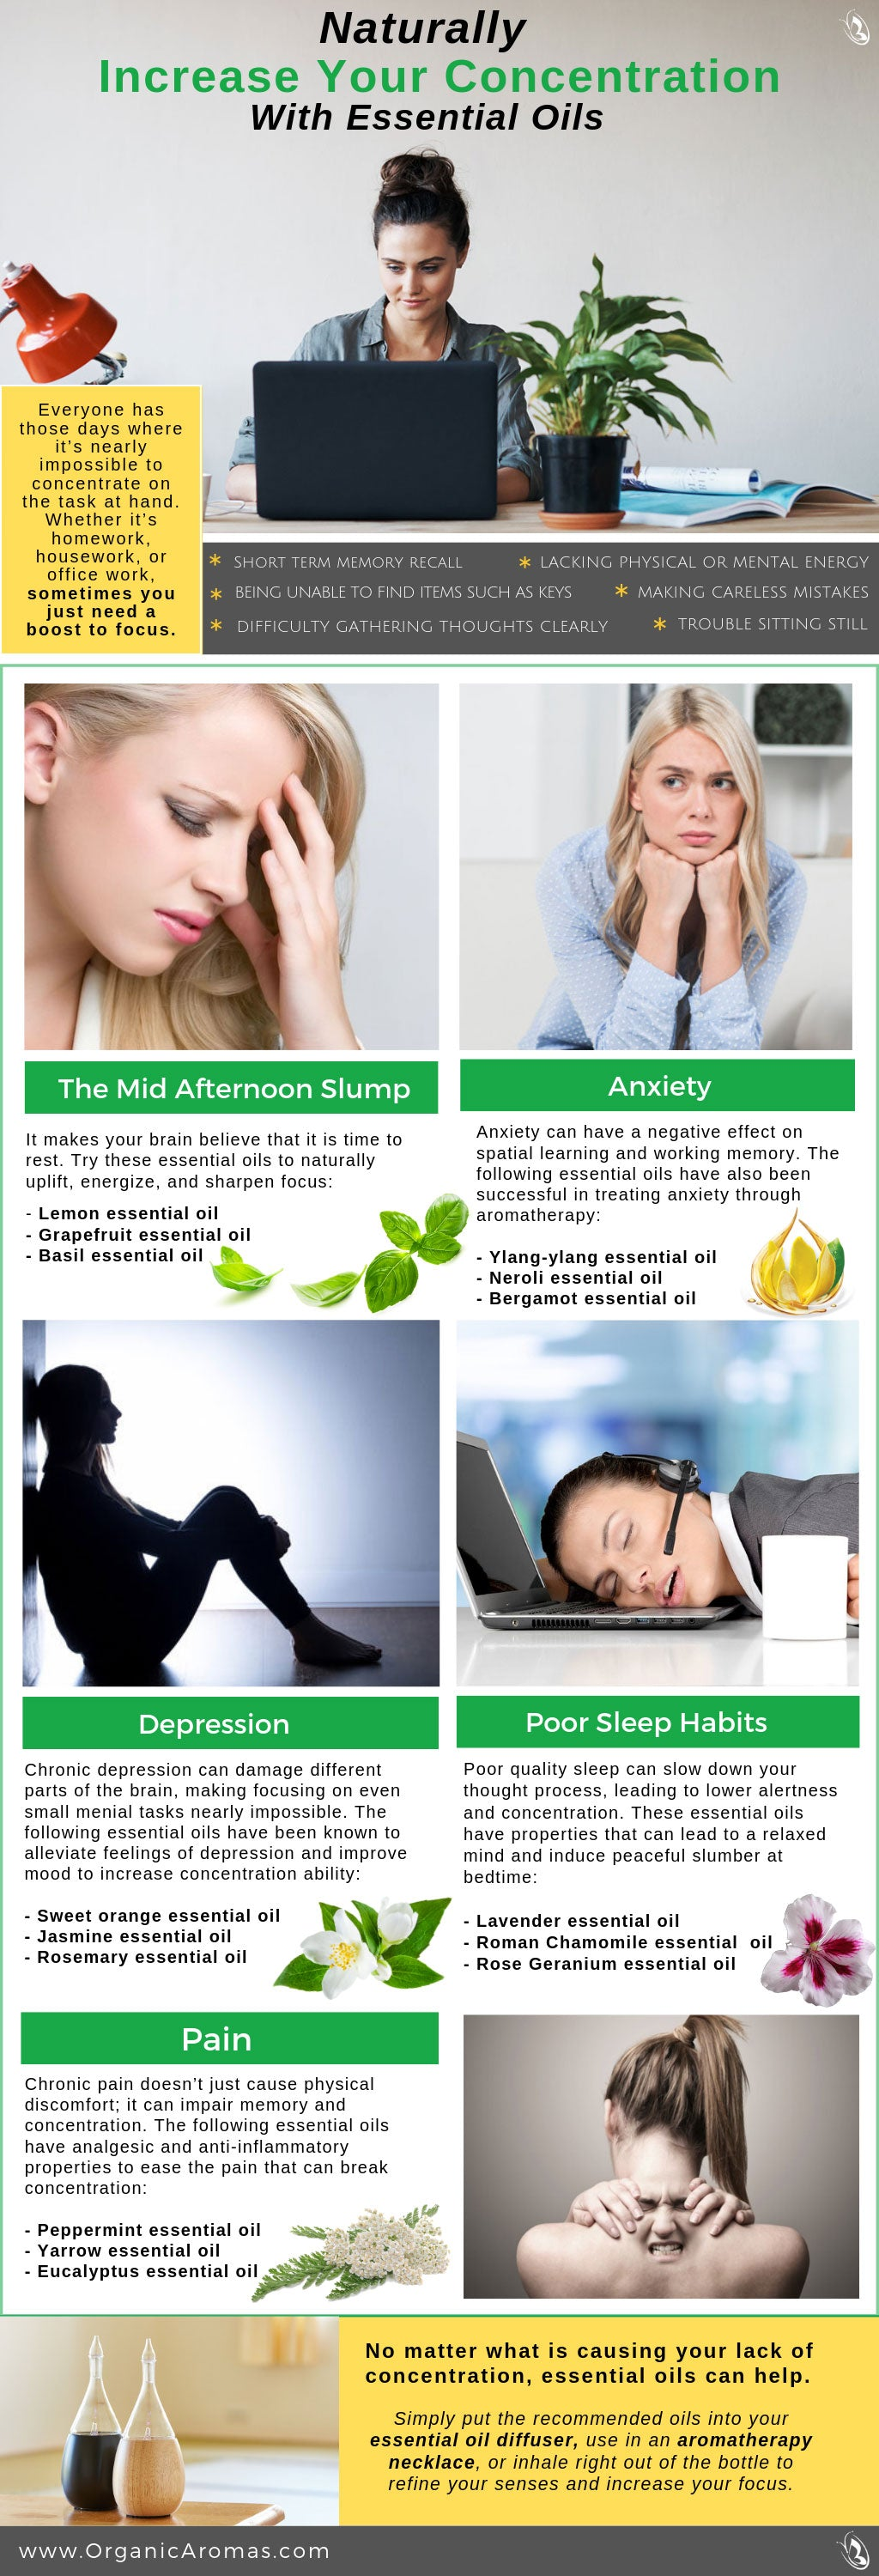 Naturally Increase Your Concentration With Essential Oils